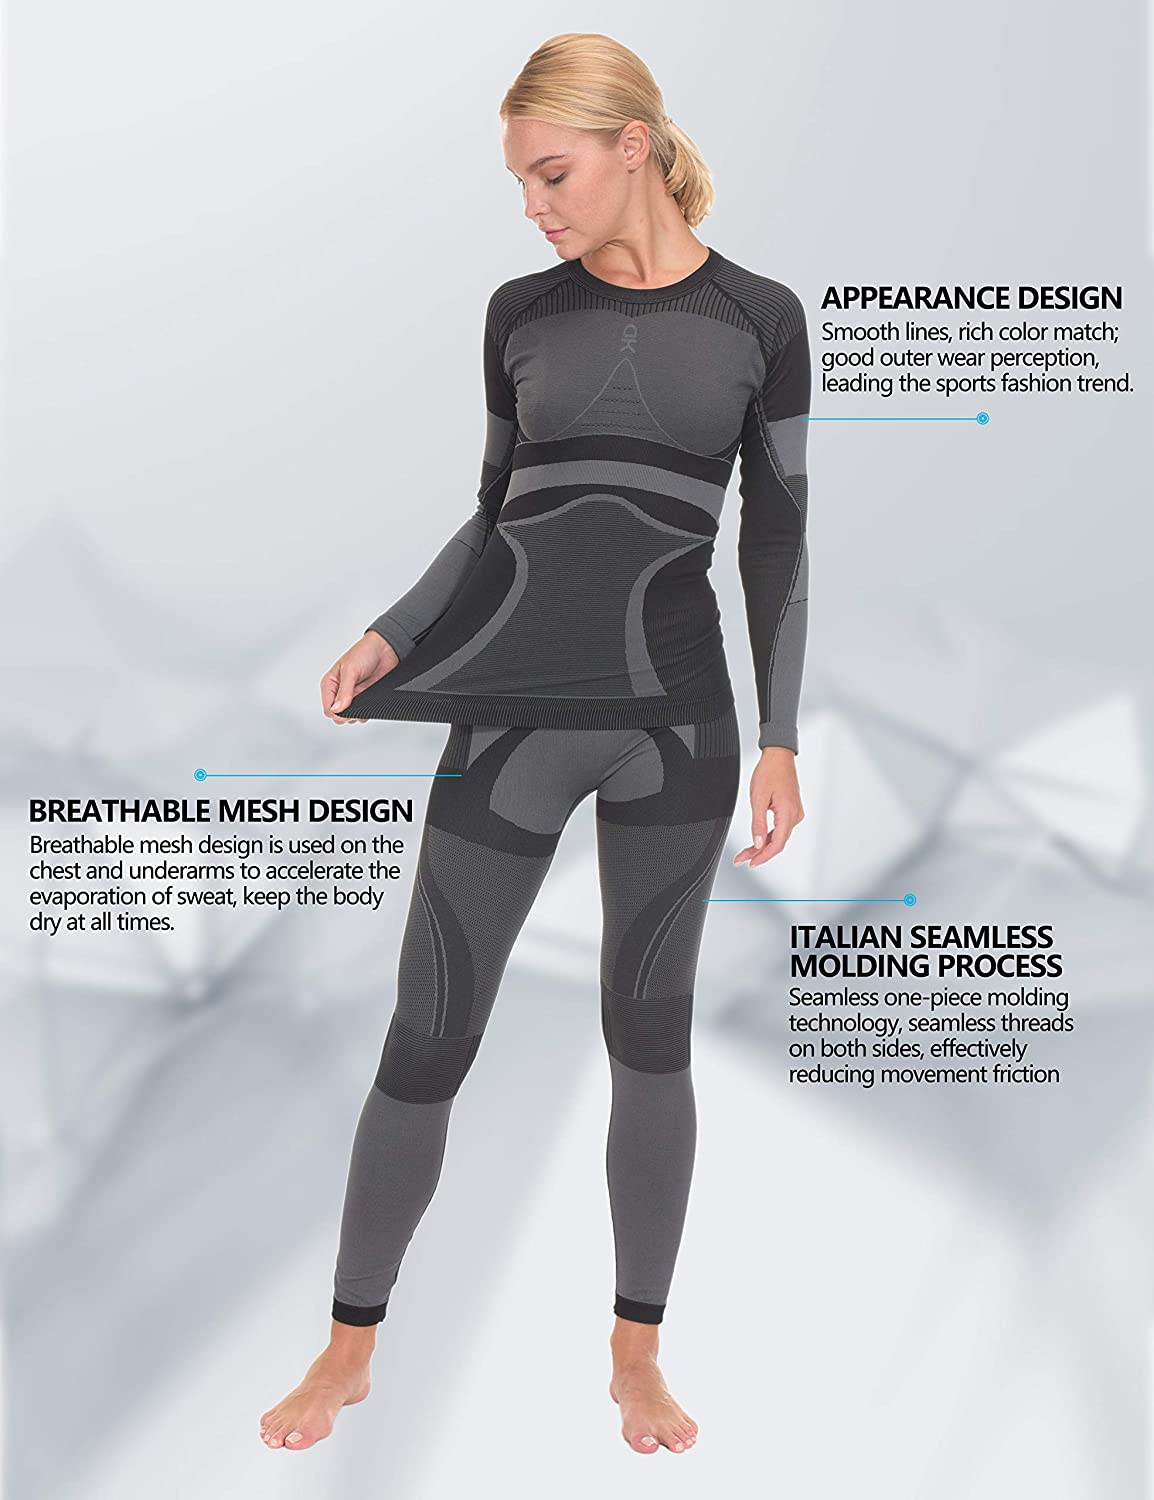 Little Donkey Andy Women's Soft Thermal Underwear Long Johns Set, Winter Warm Knit Compression Baselayer Skiing Top & Bottom